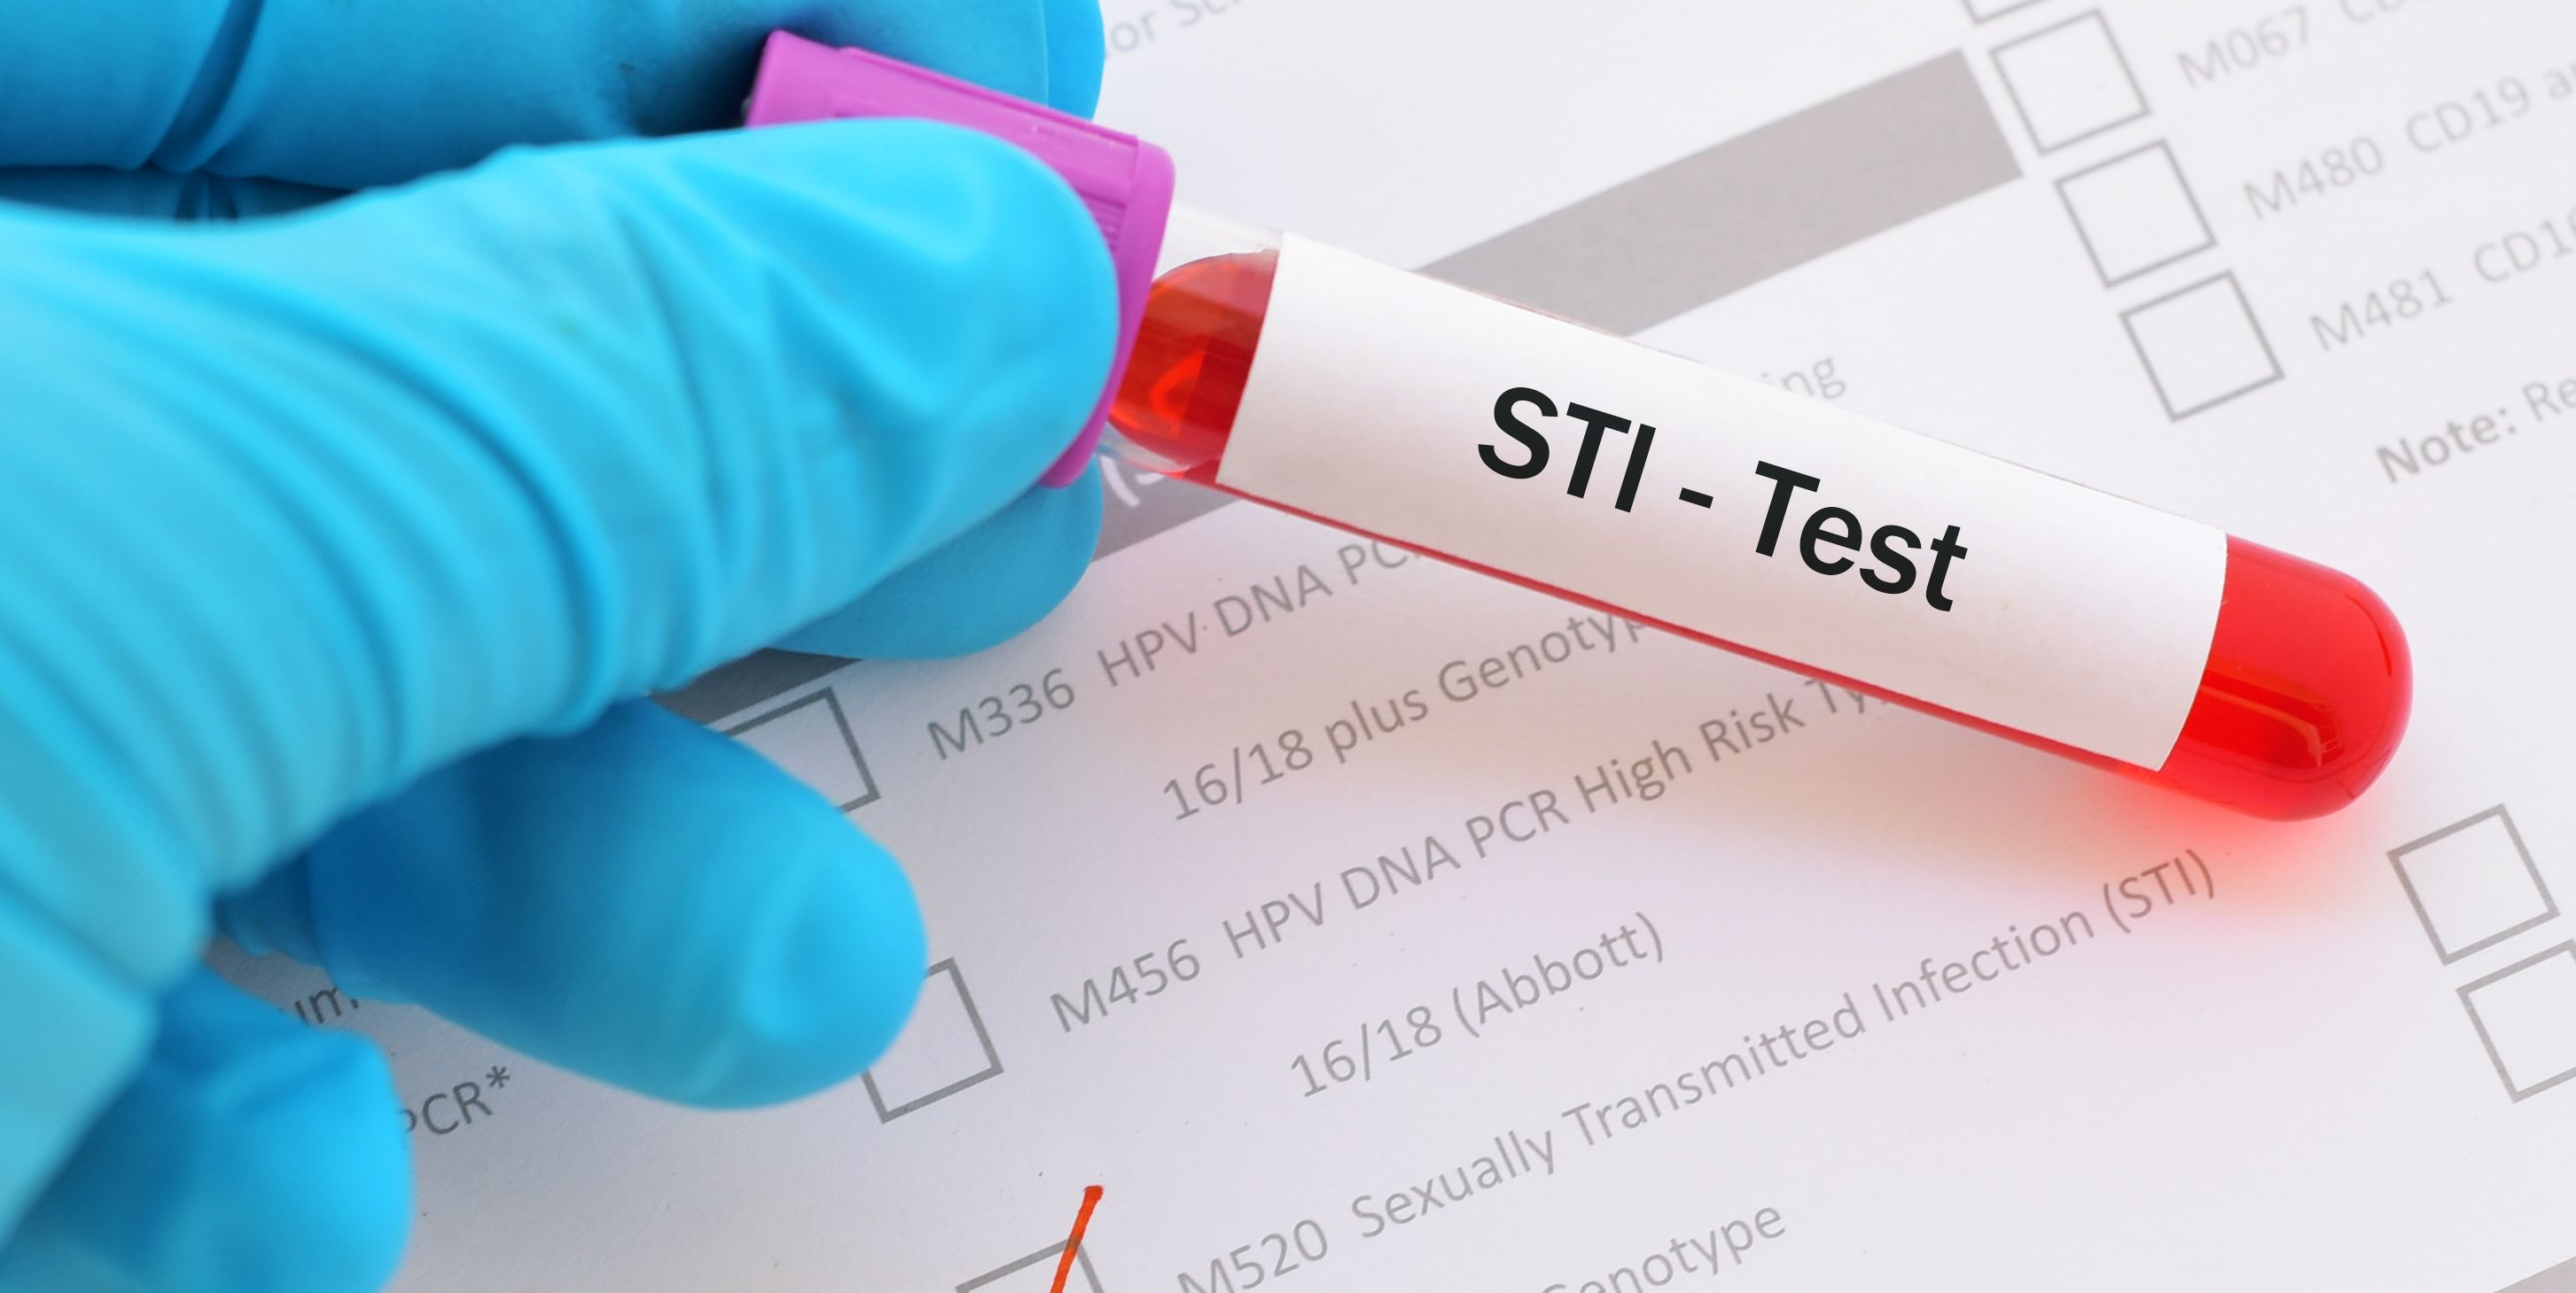 Sexually transmitted infection (STI) test